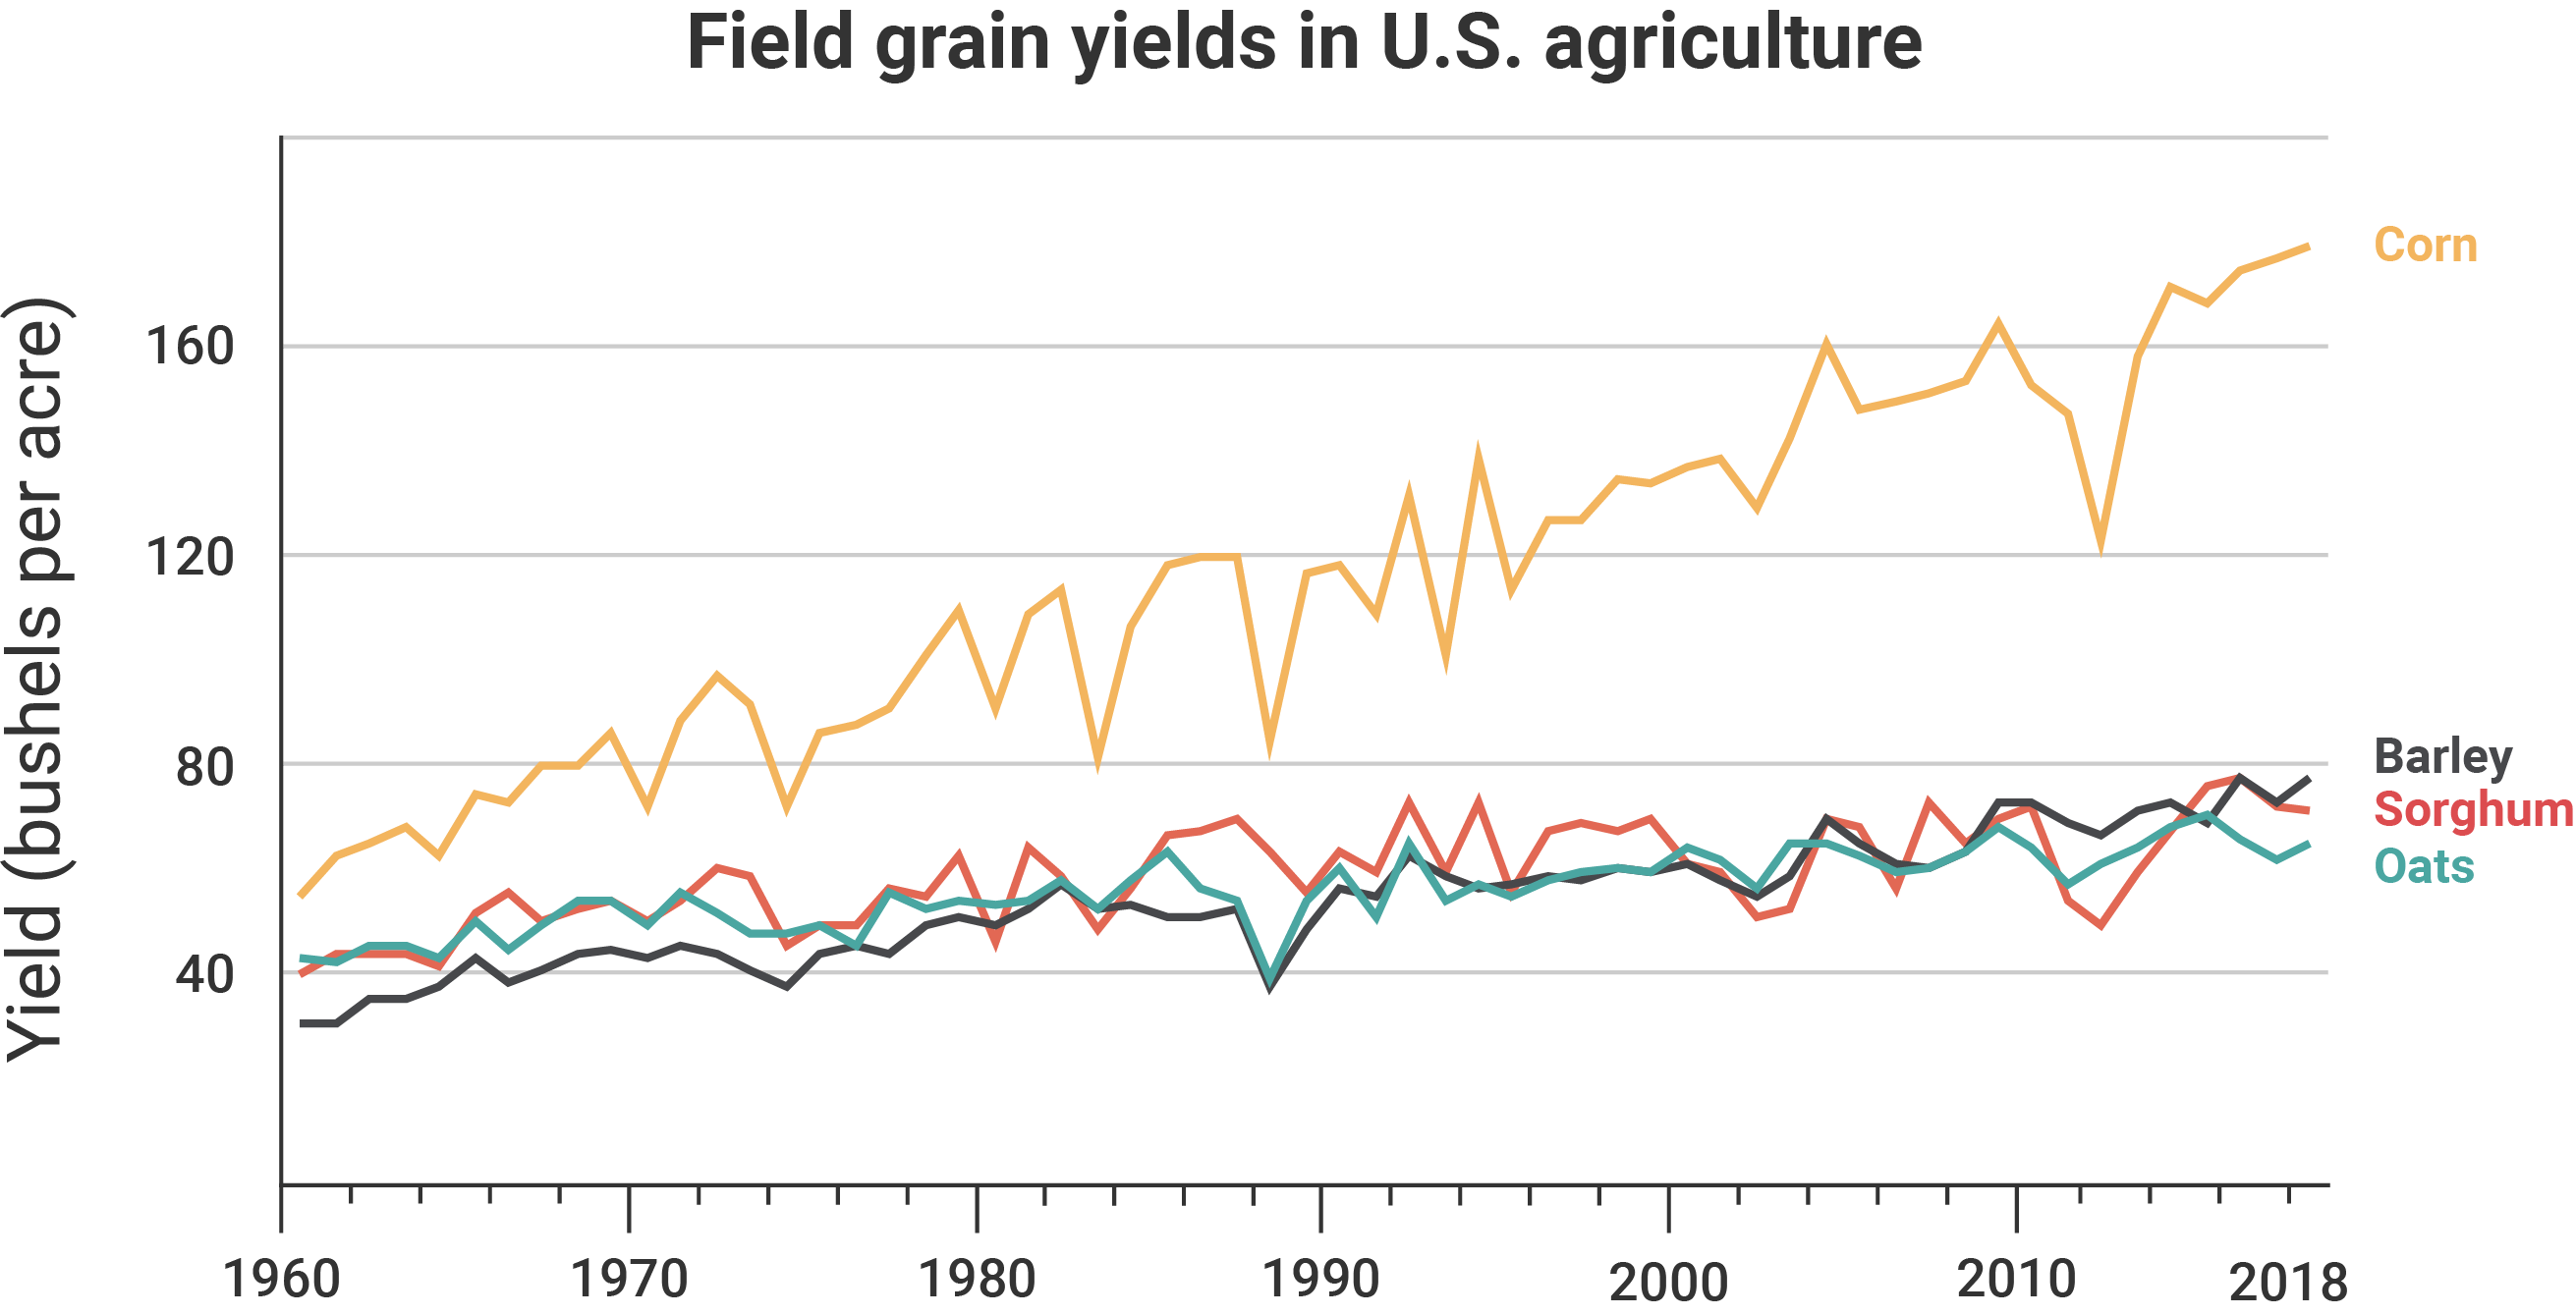 A graph showing field grain yields in U.S. agriculture from 1960 to 2018